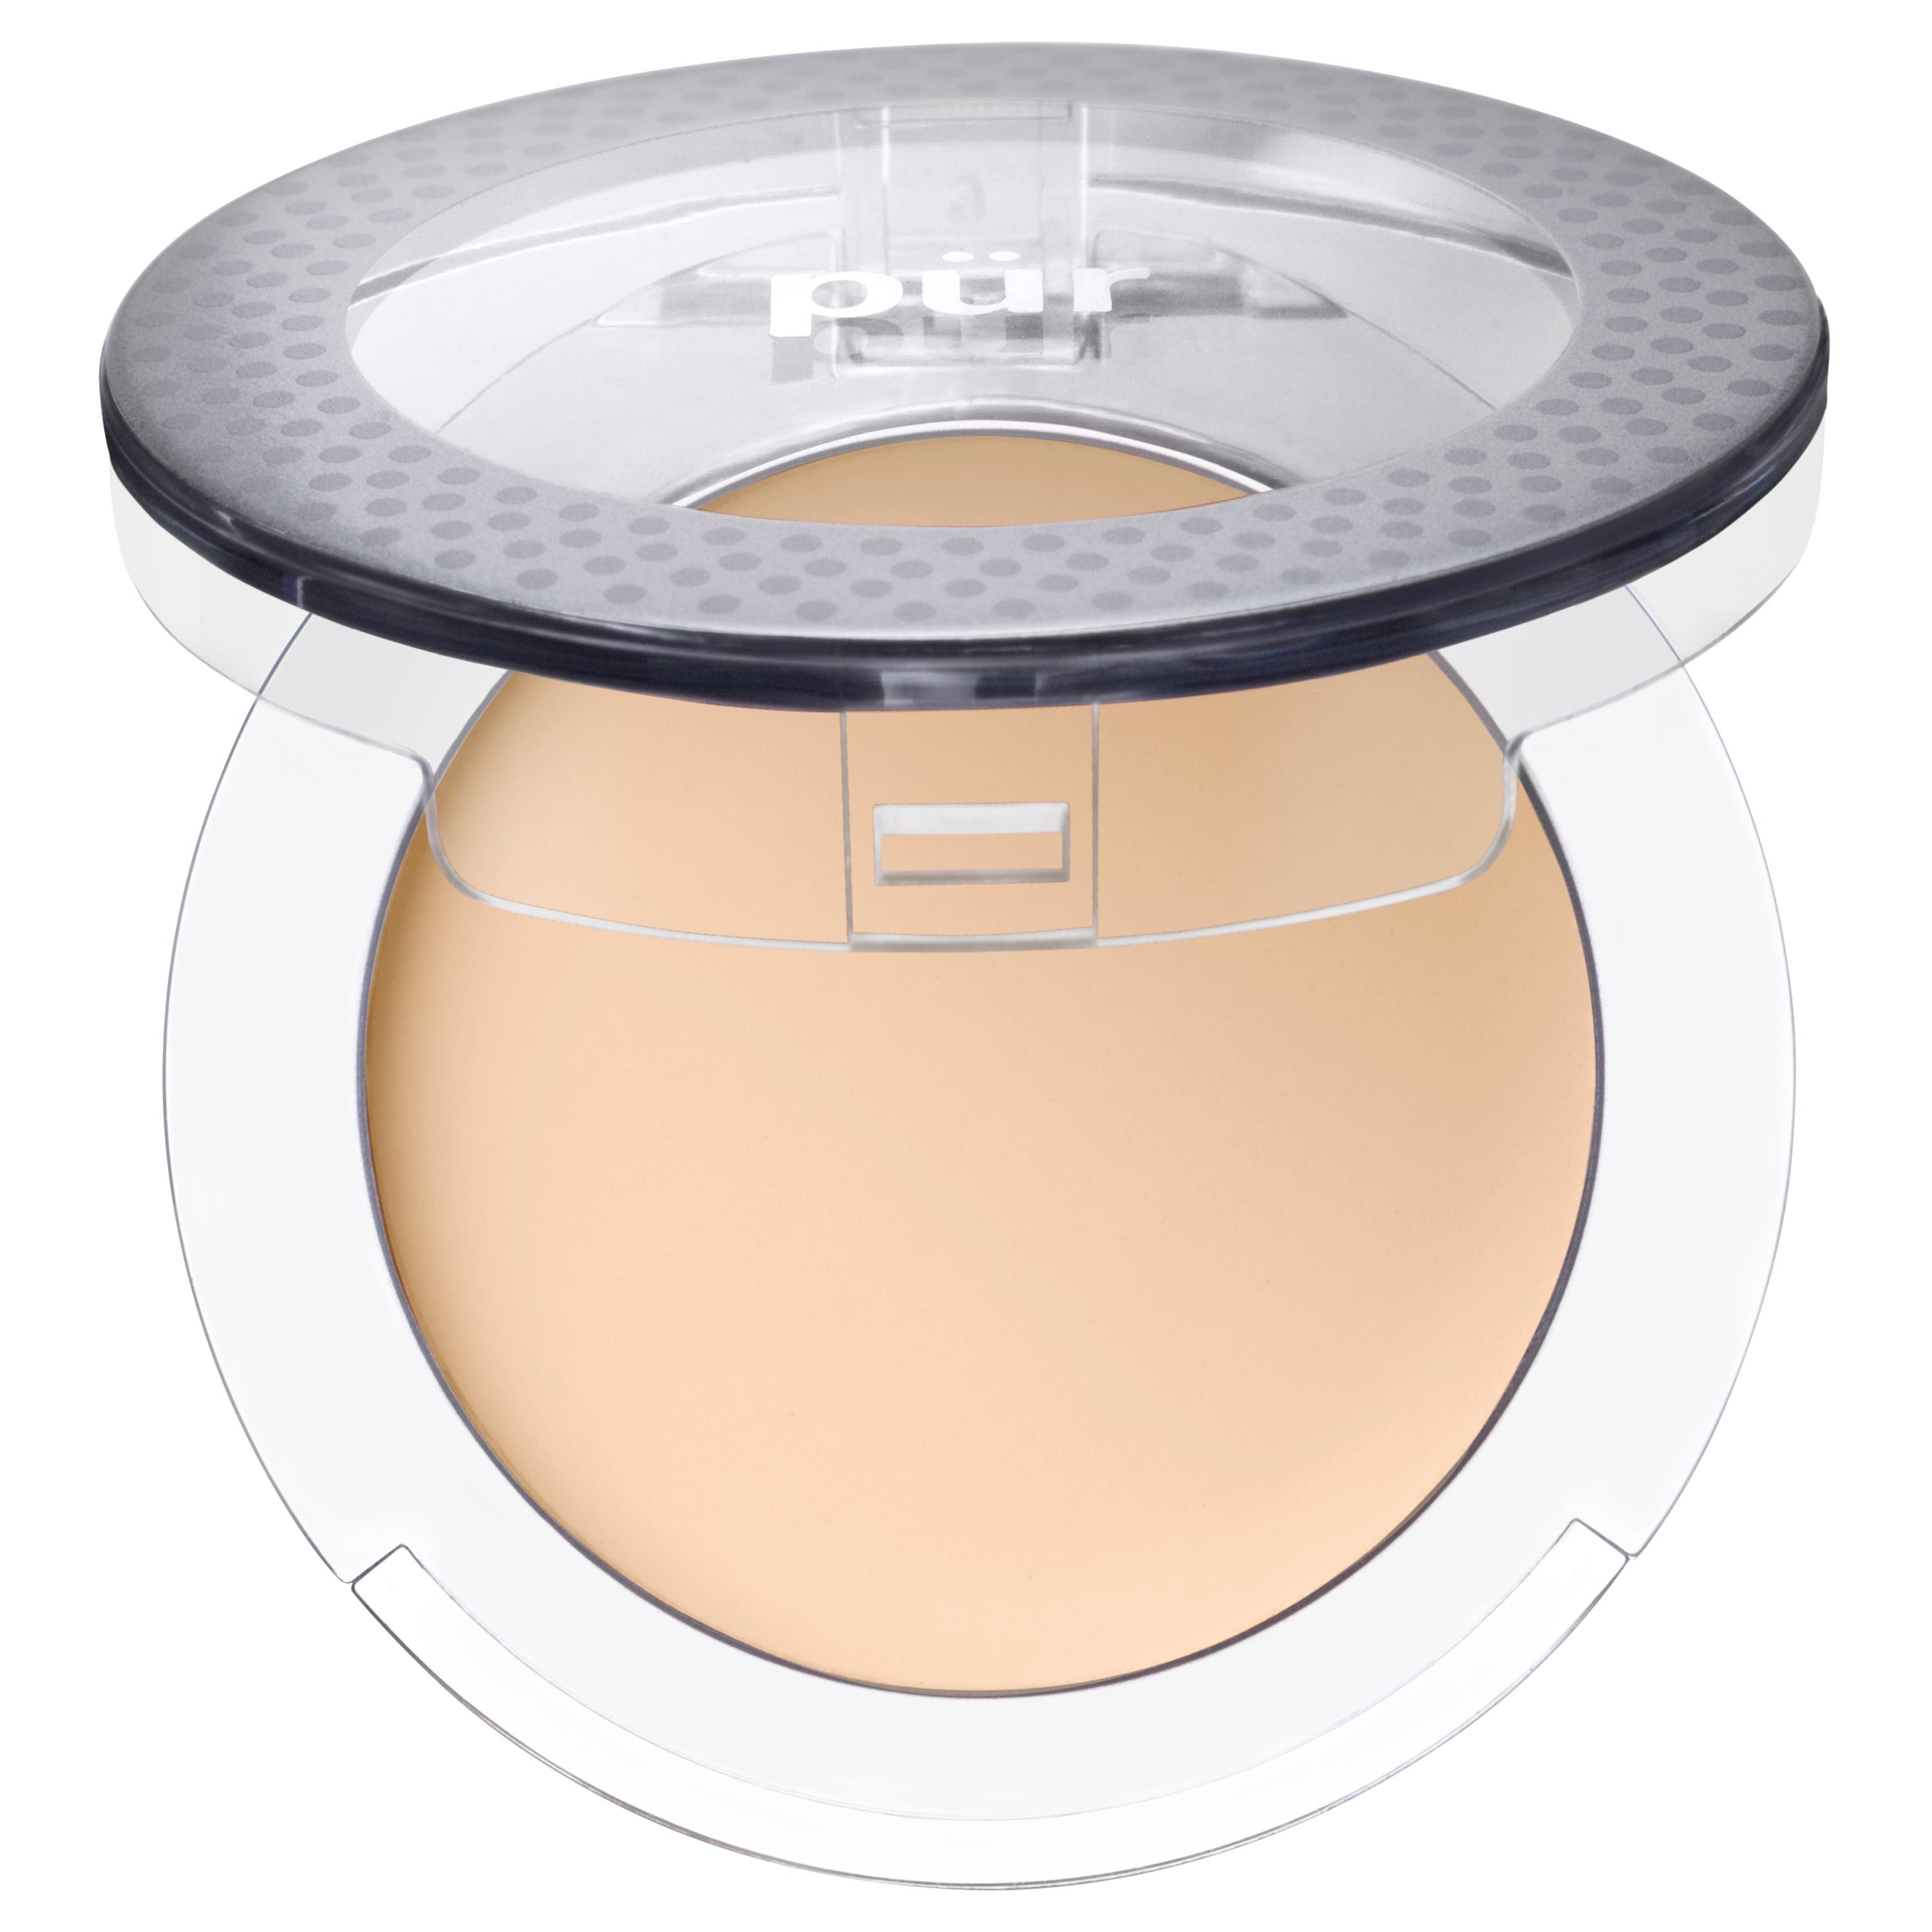 Disappearing Act Concealer in Porcelain